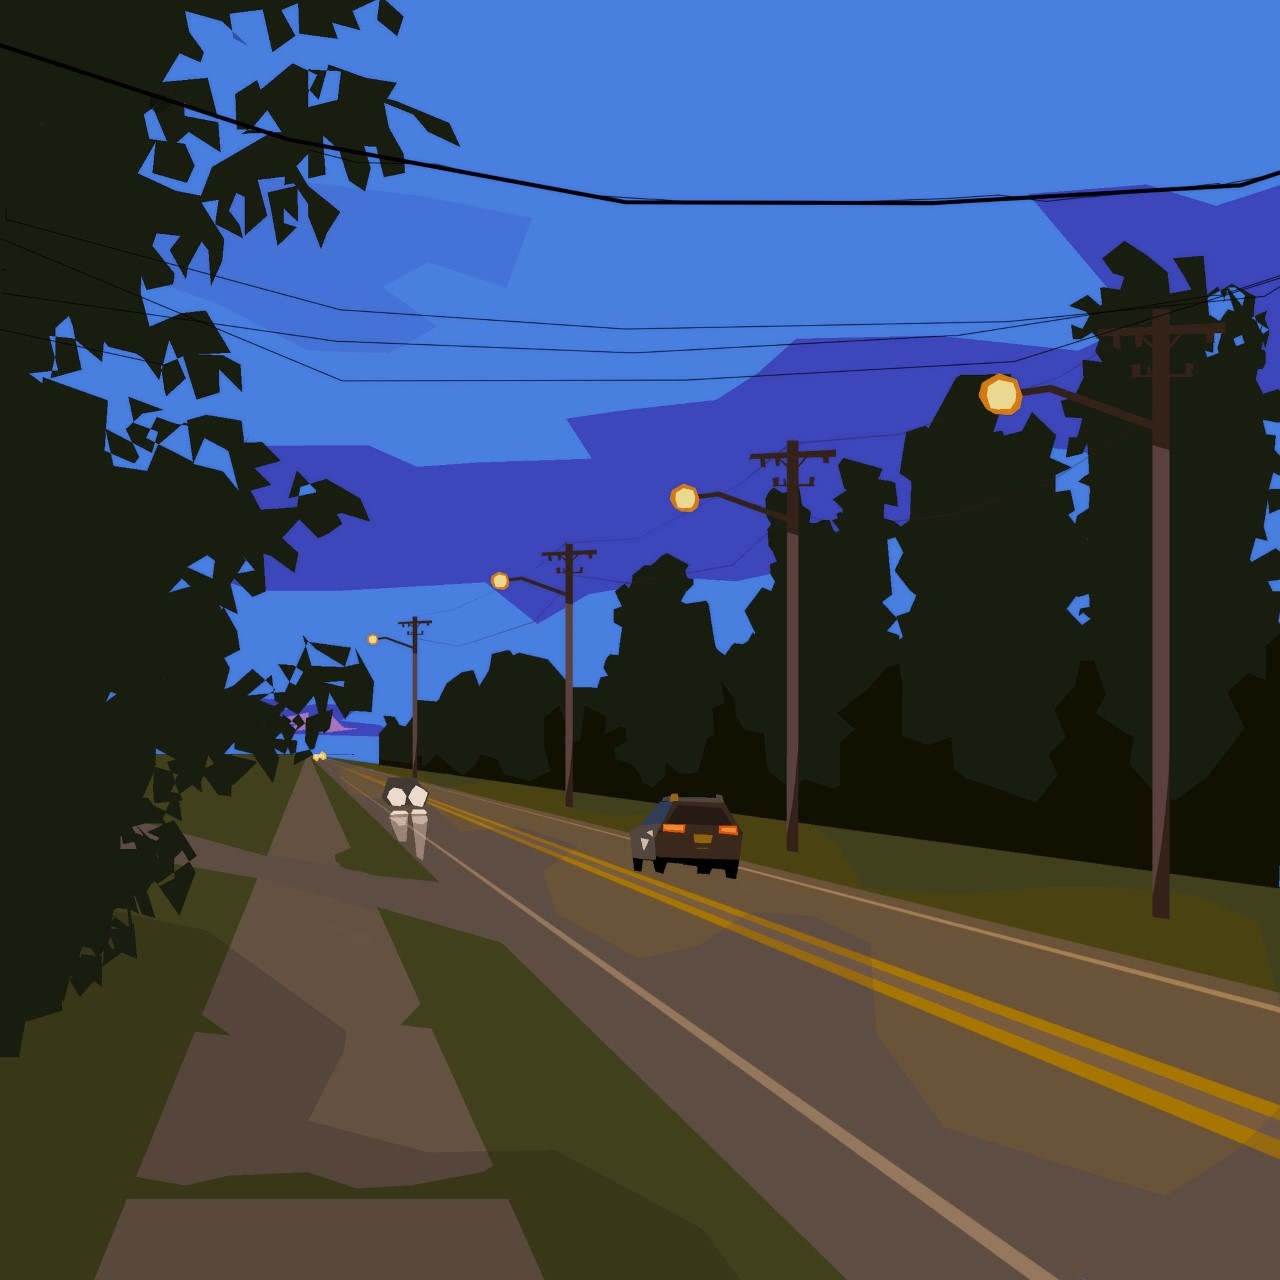 Flat colored shapes of a highway at night